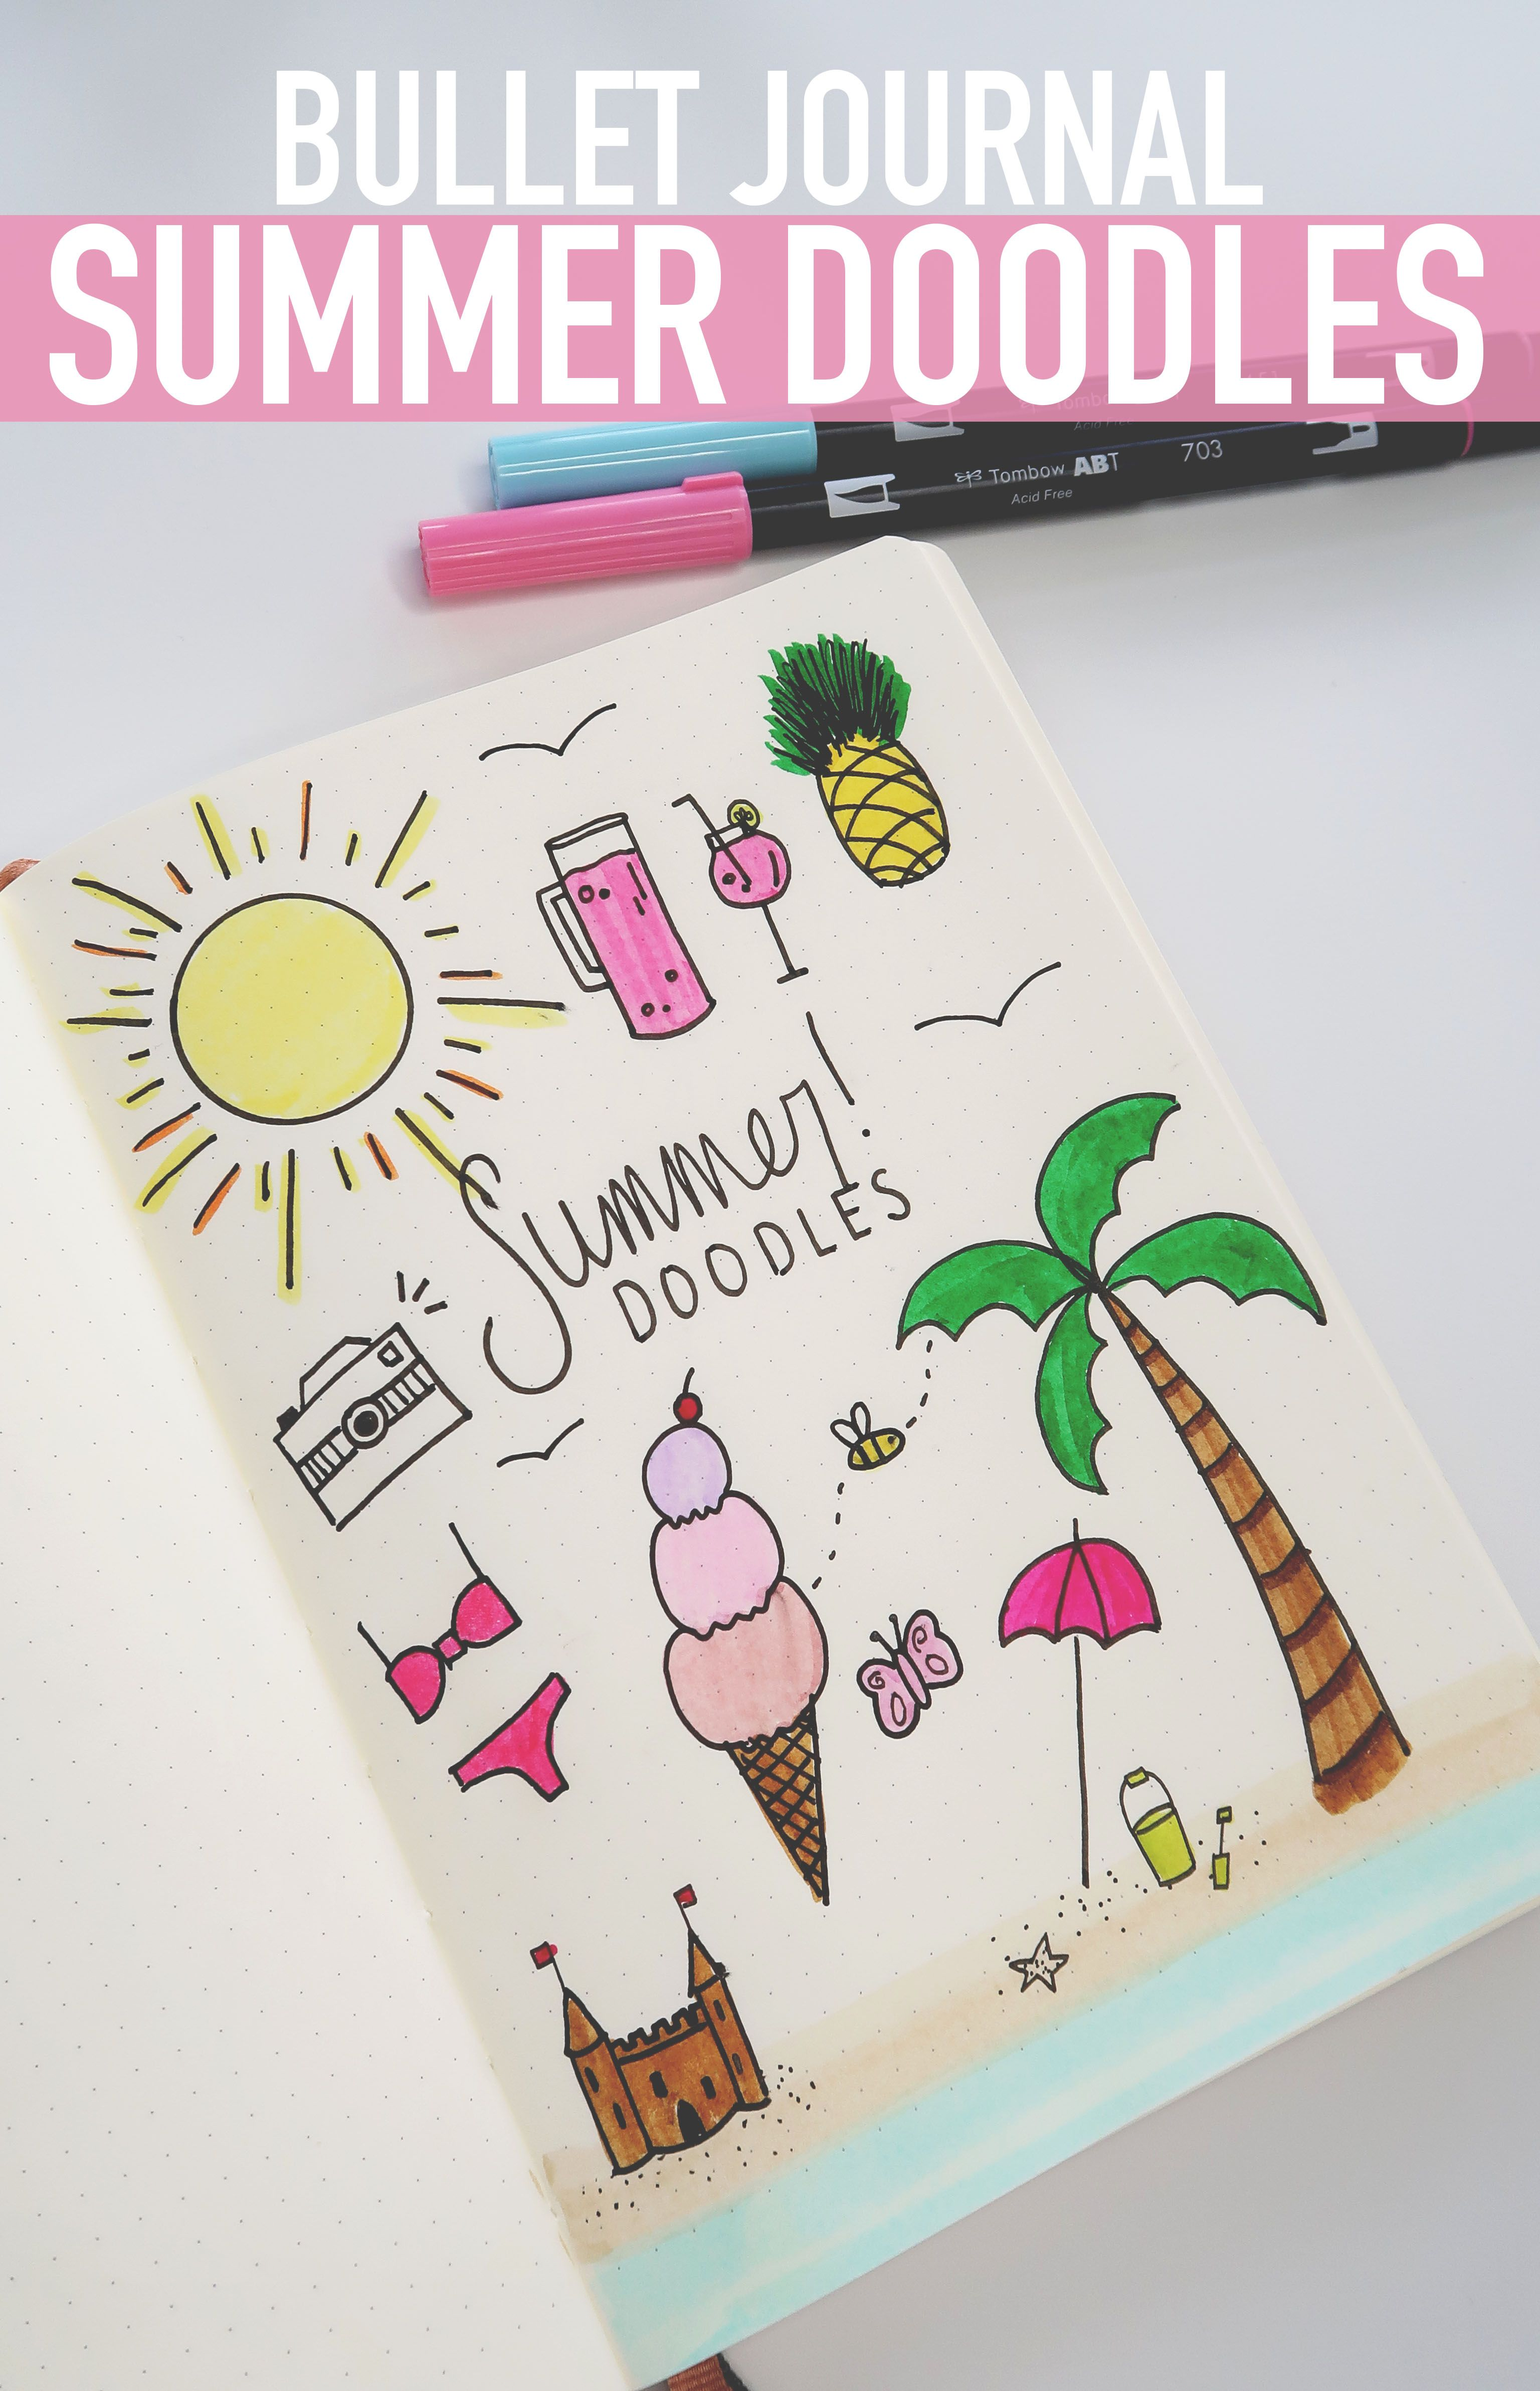 bullet journal summer doodles how to doodle tutorial. Black Bedroom Furniture Sets. Home Design Ideas